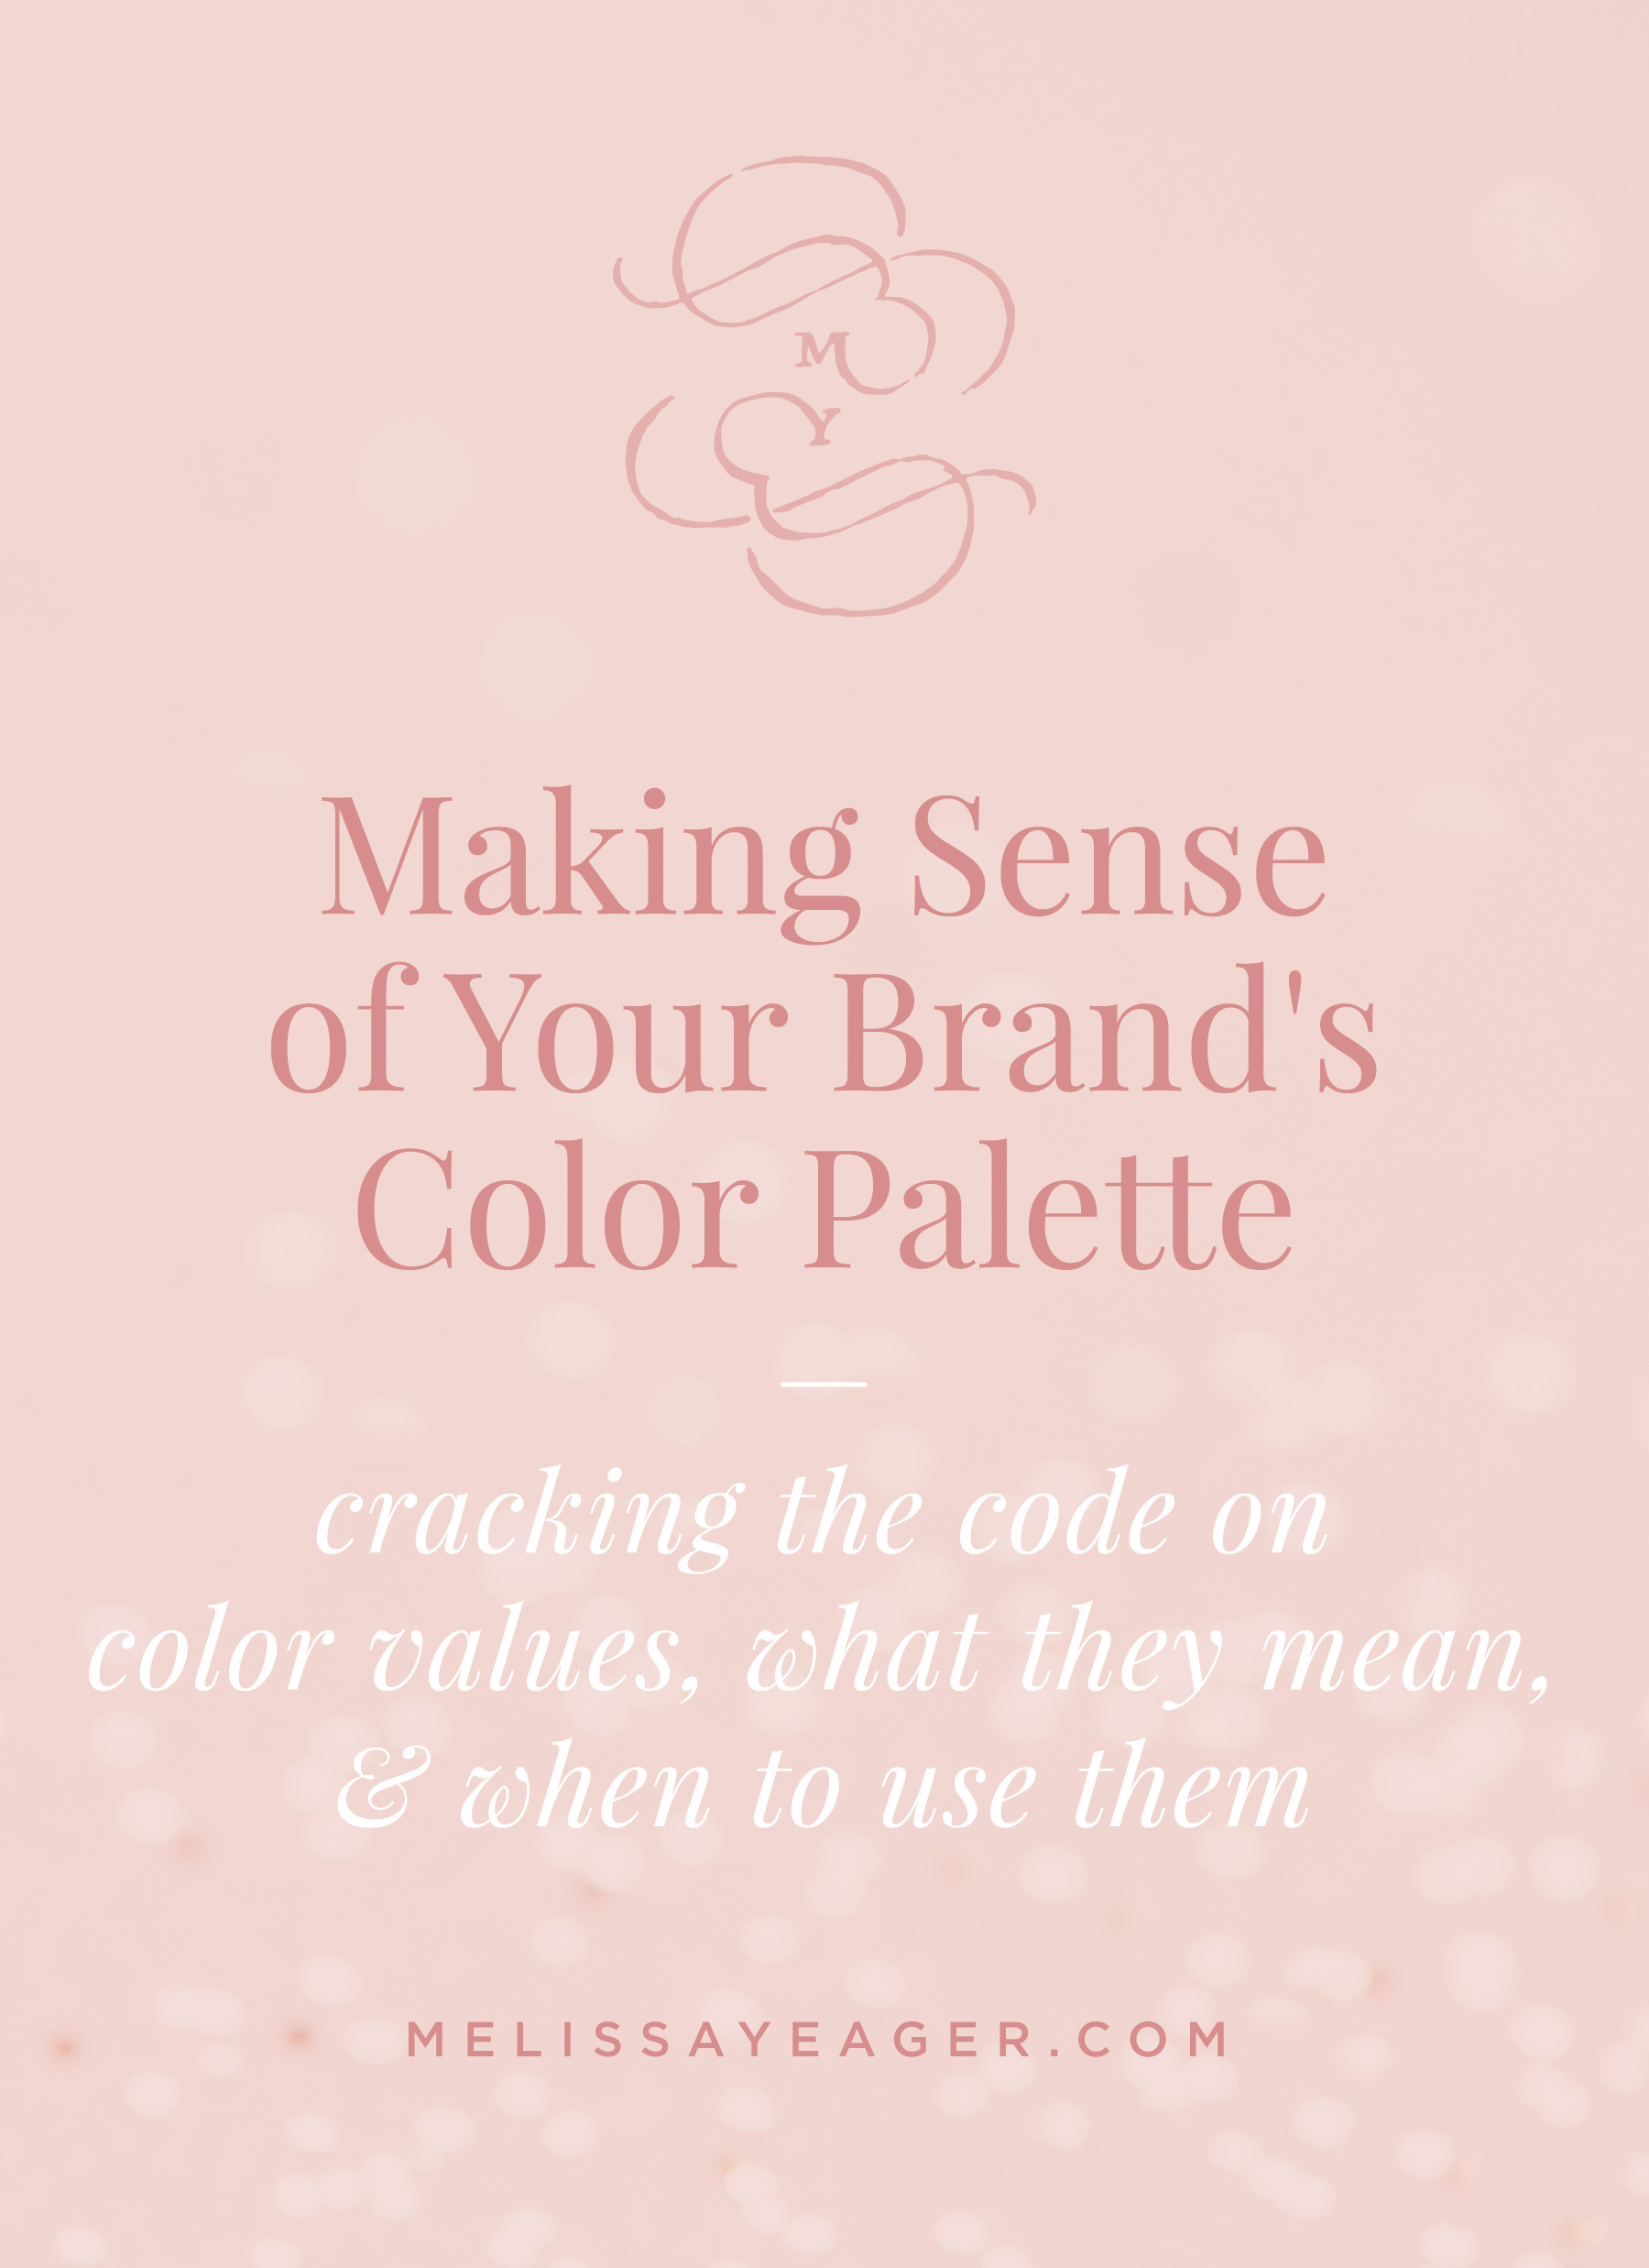 Demystifying Your Brand's Color Palette - cracking the code on color values, what they mean, & when to use them